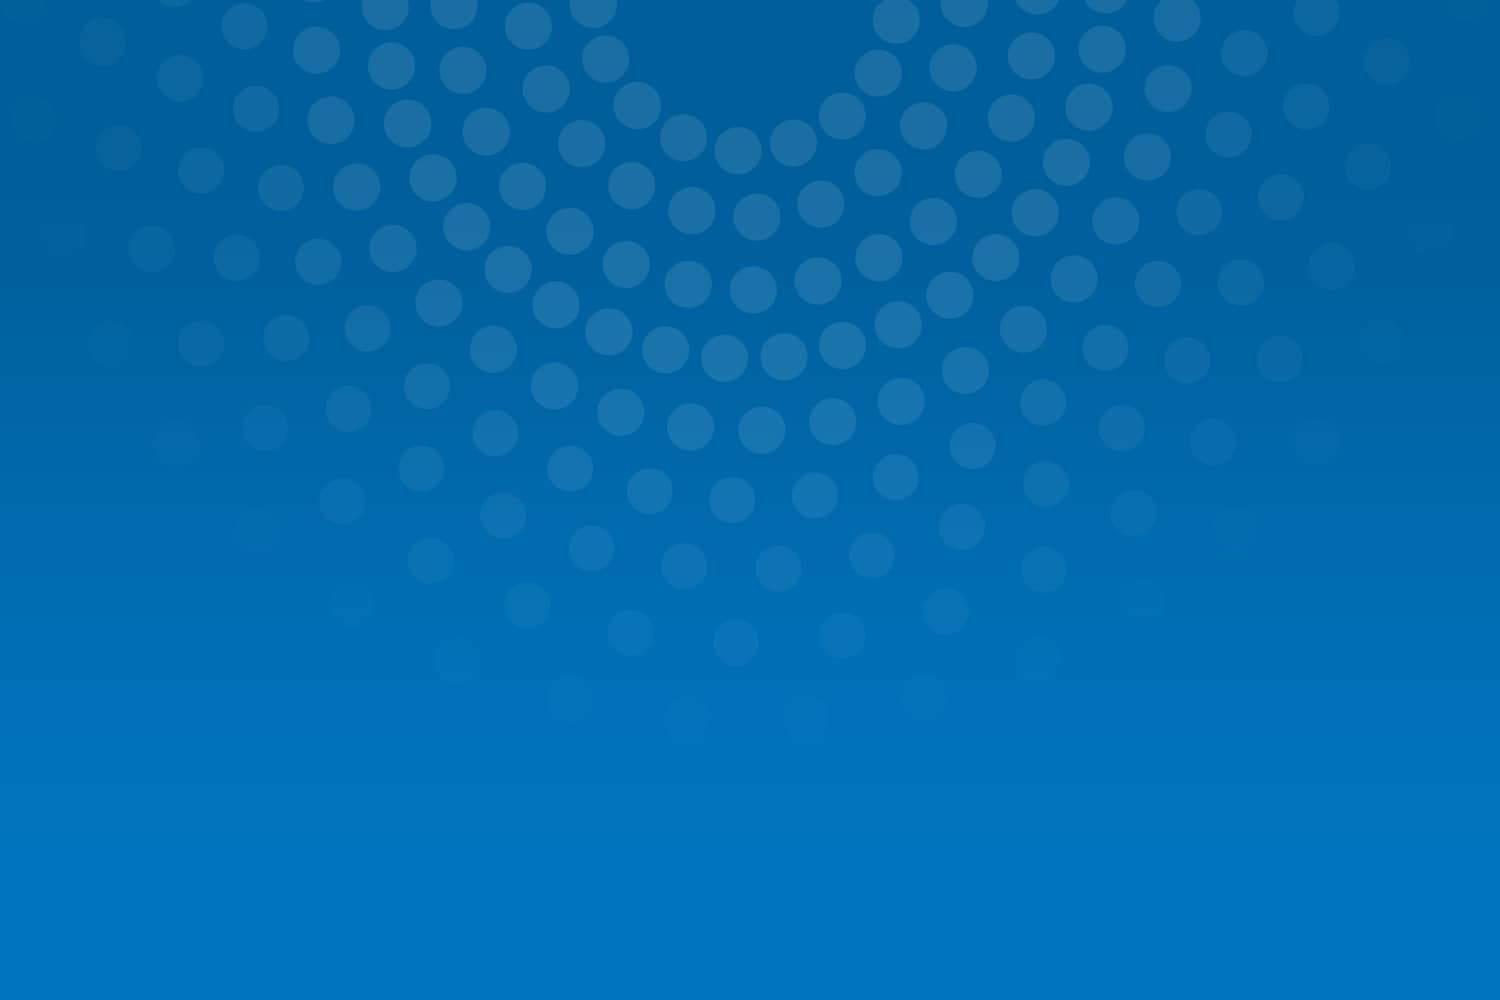 Abstract radiance art on cobalt background